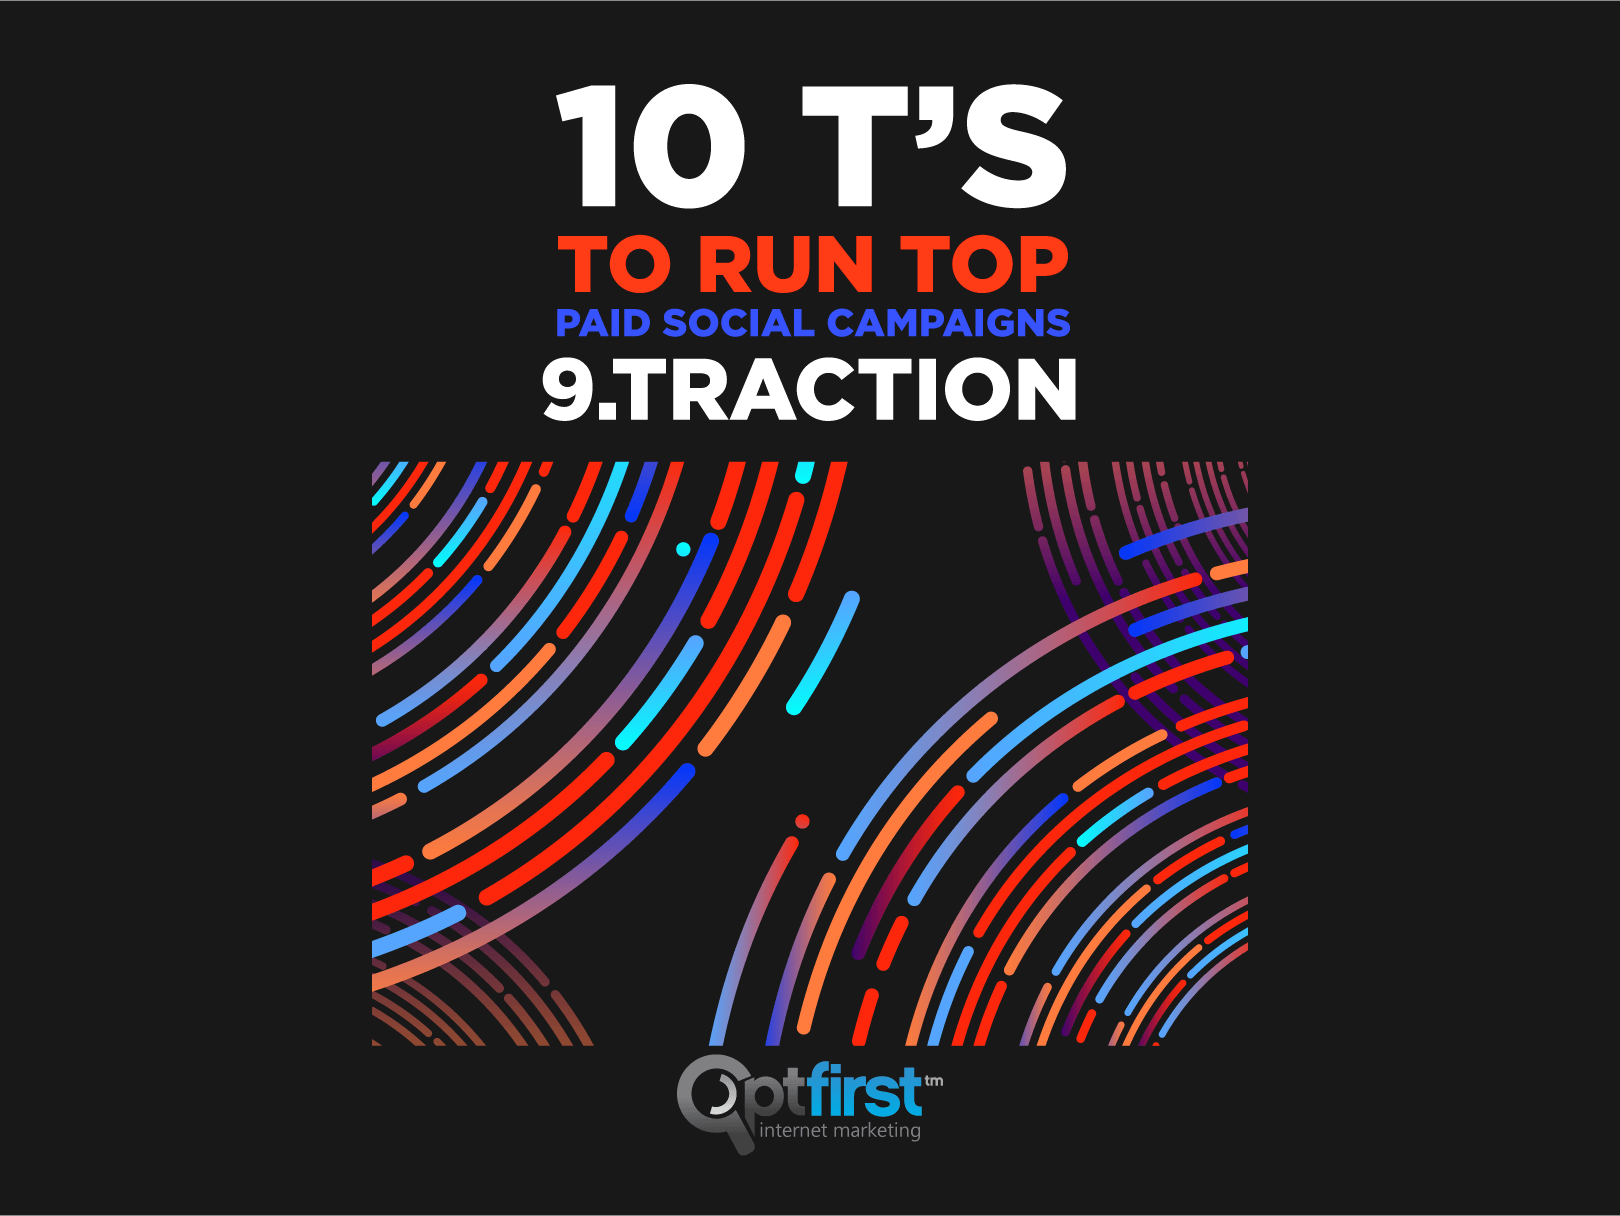 10 T's to Run Top Paid Social Campaigns, Step 9: Traction